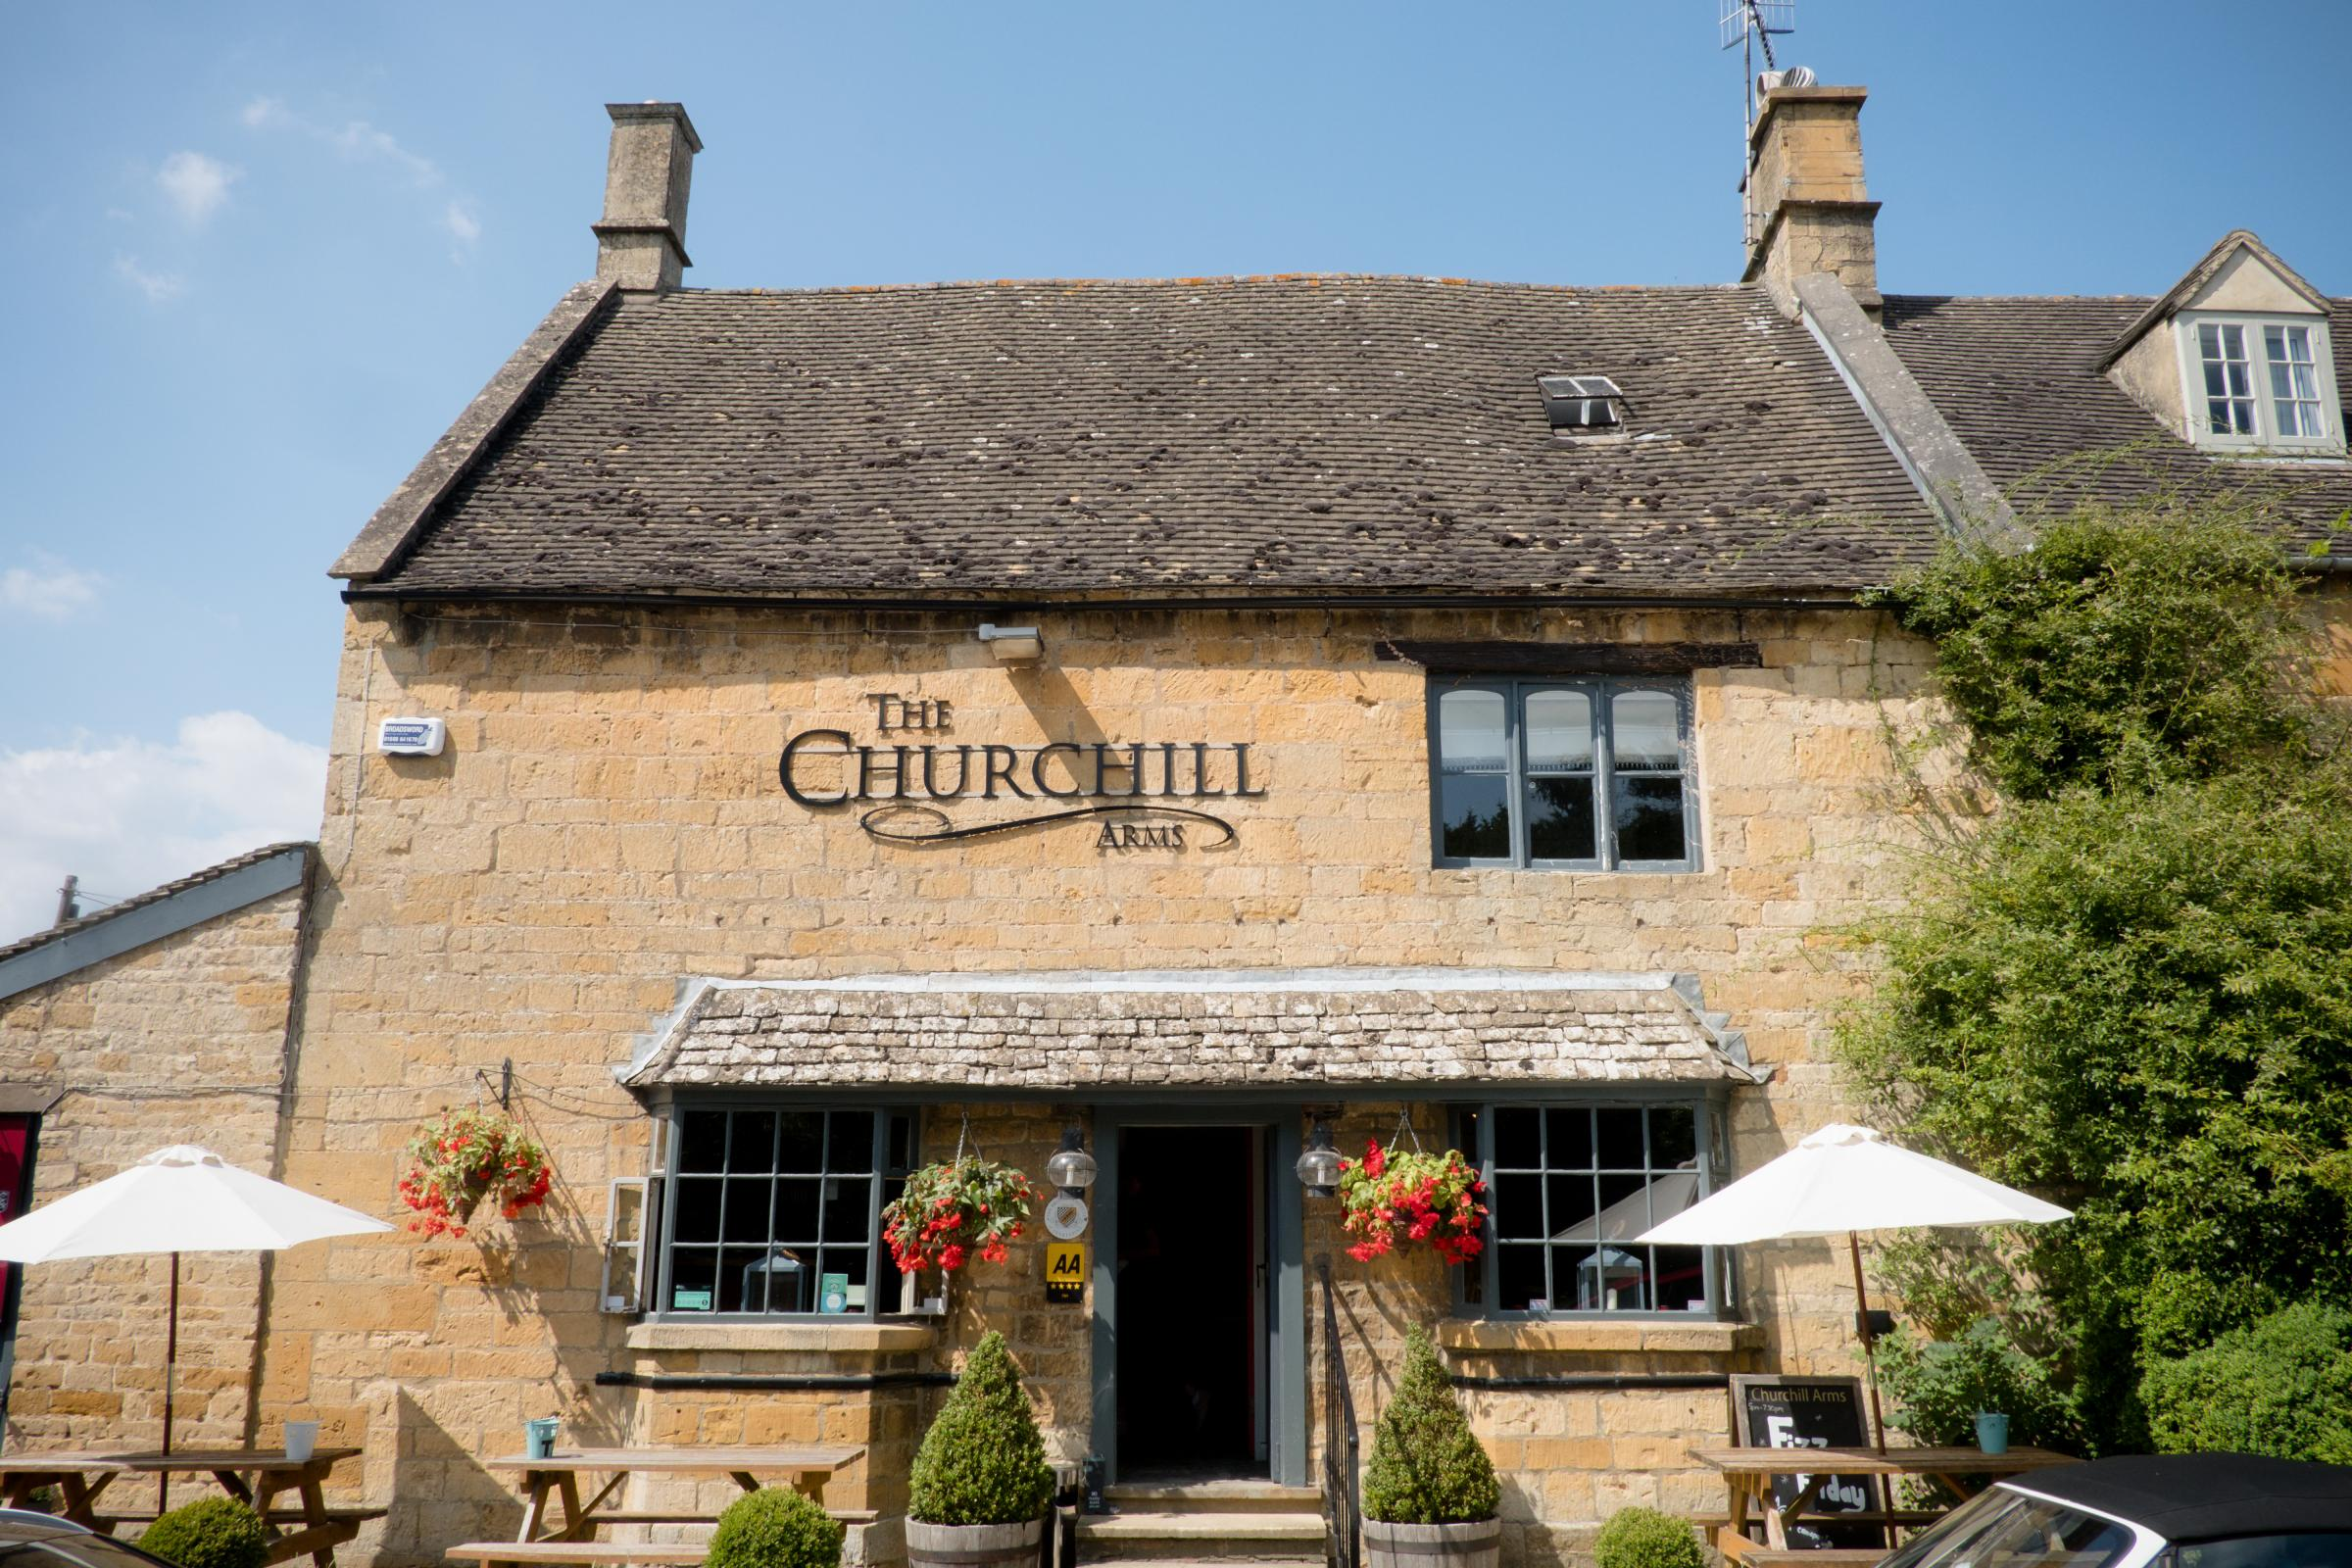 The Churchill Arms, Paxford, Chipping Campden. Picture: Charlie Flounders Photography